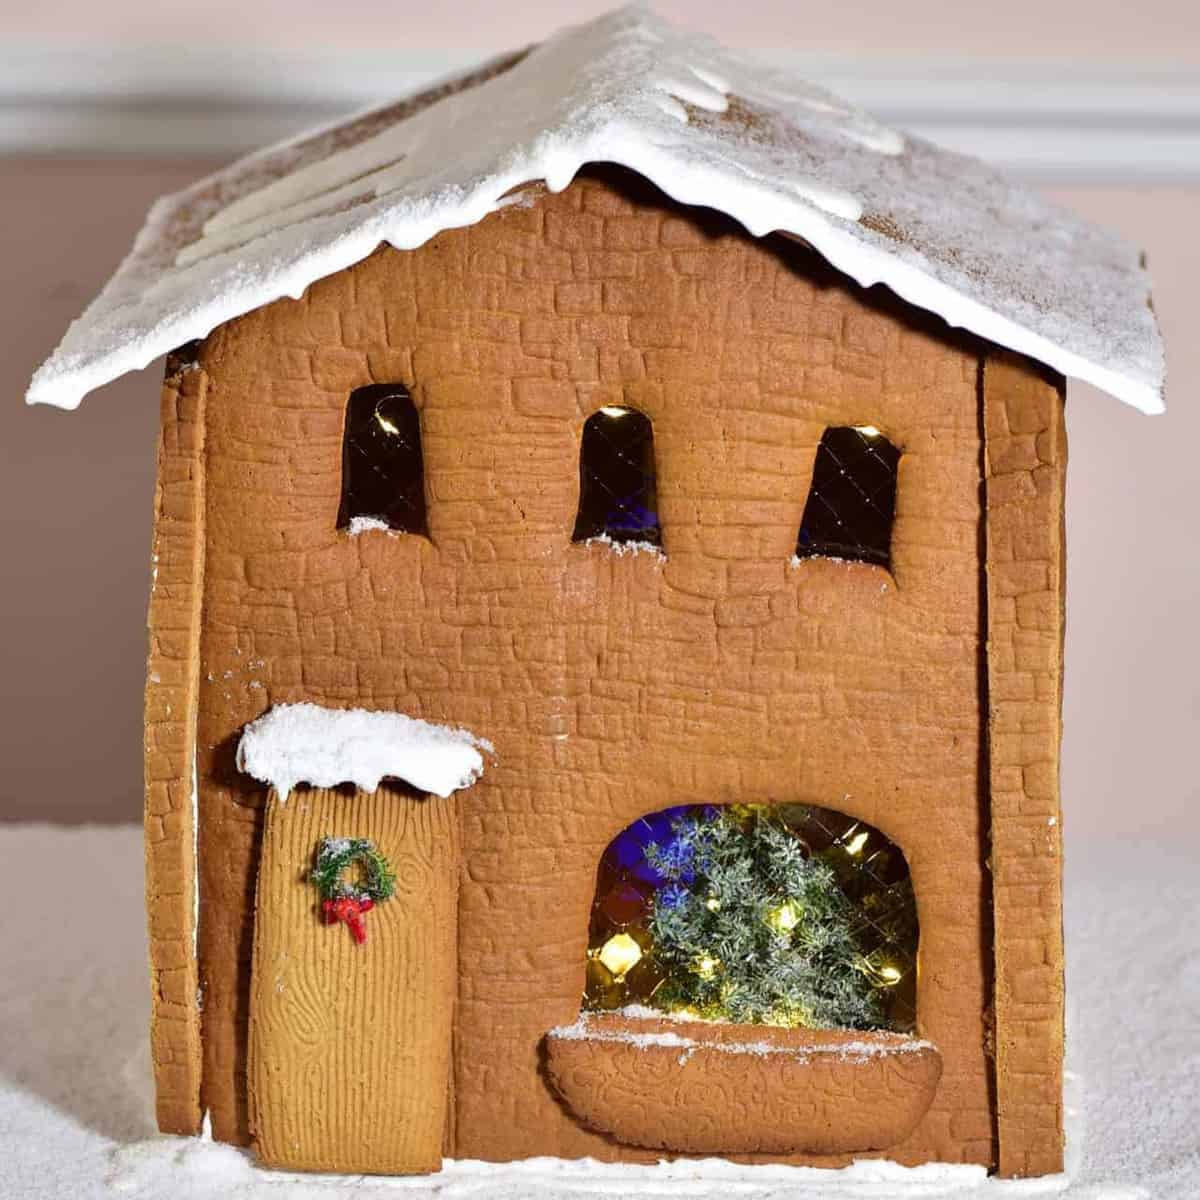 Gingerbread house decorated with a tree, lights and mini wreath